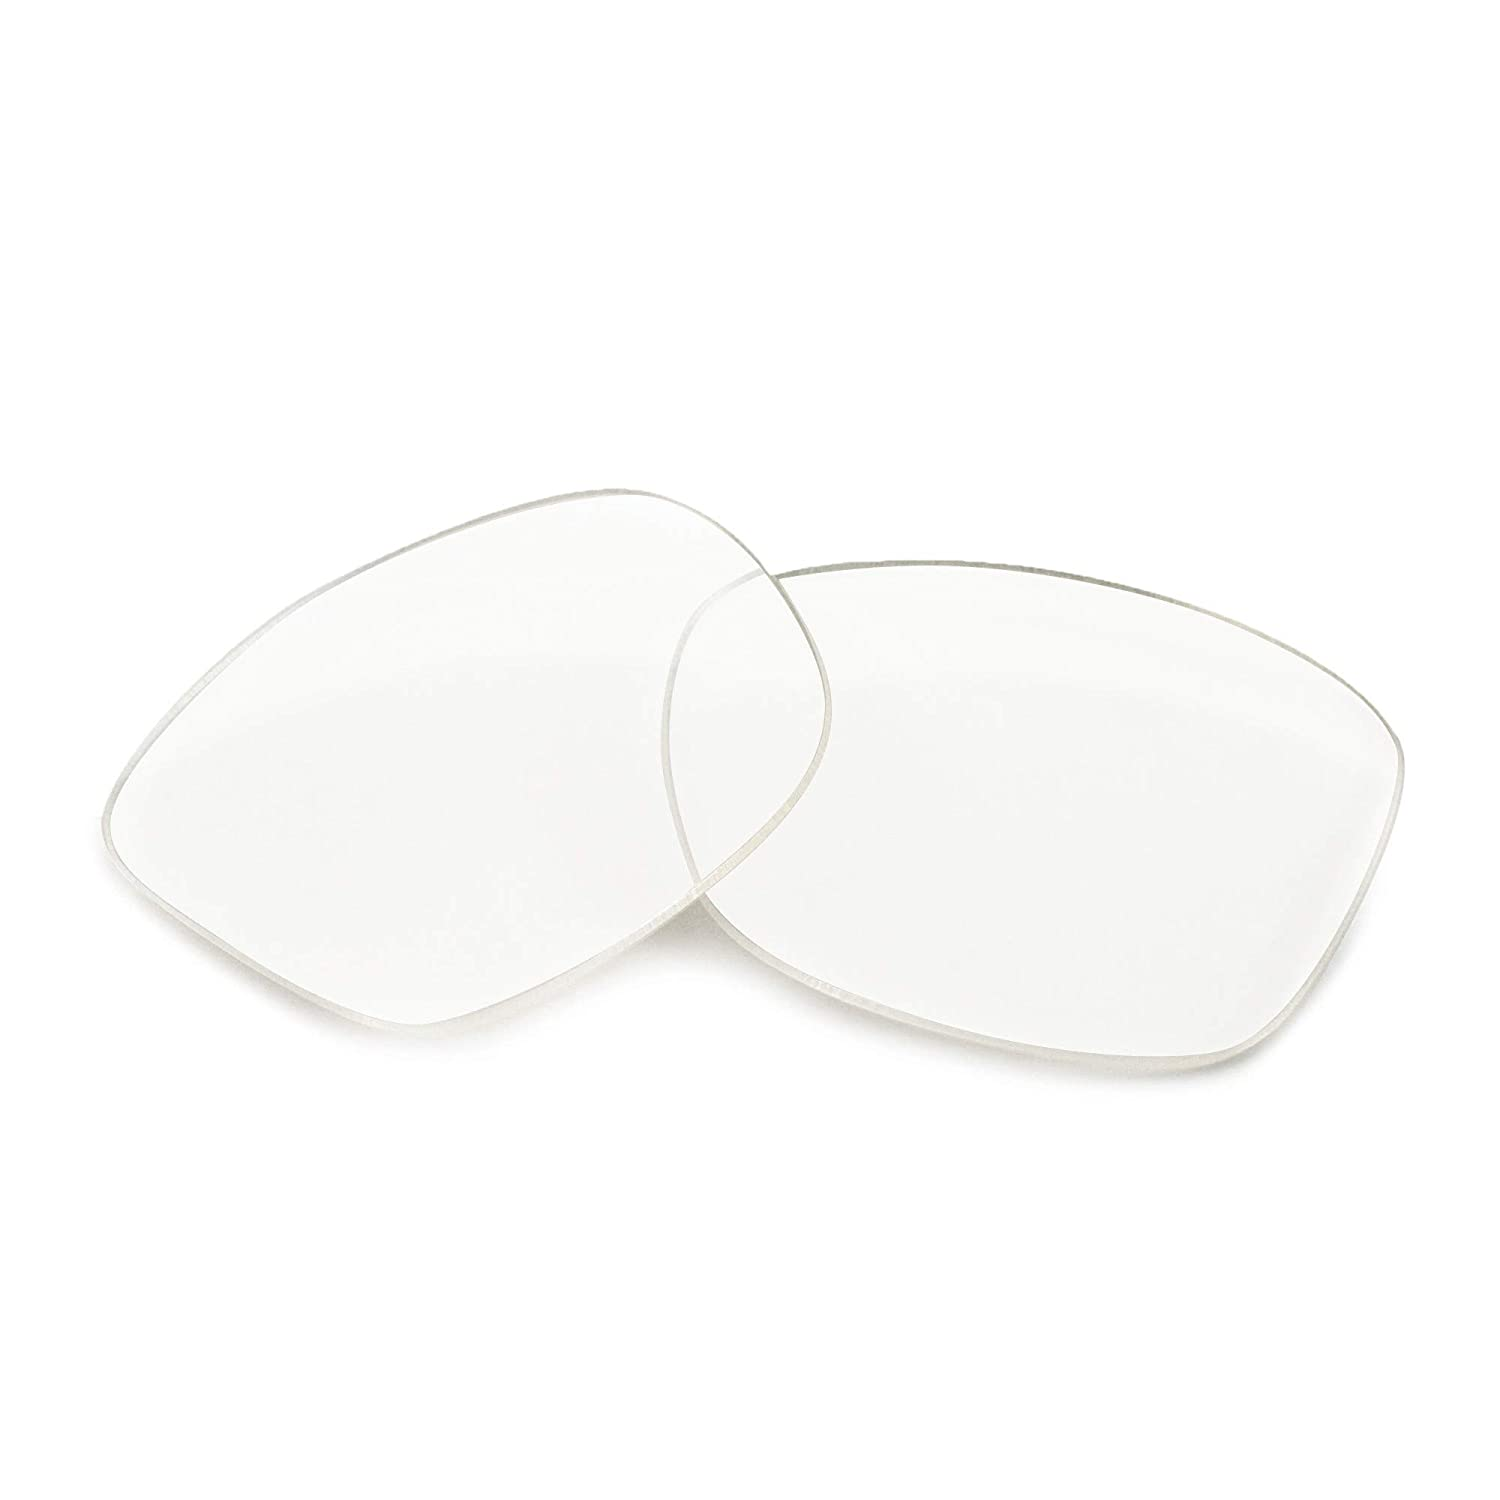 Fuse Lenses Non-Polarized Replacement Lenses for Tom Ford River TF367